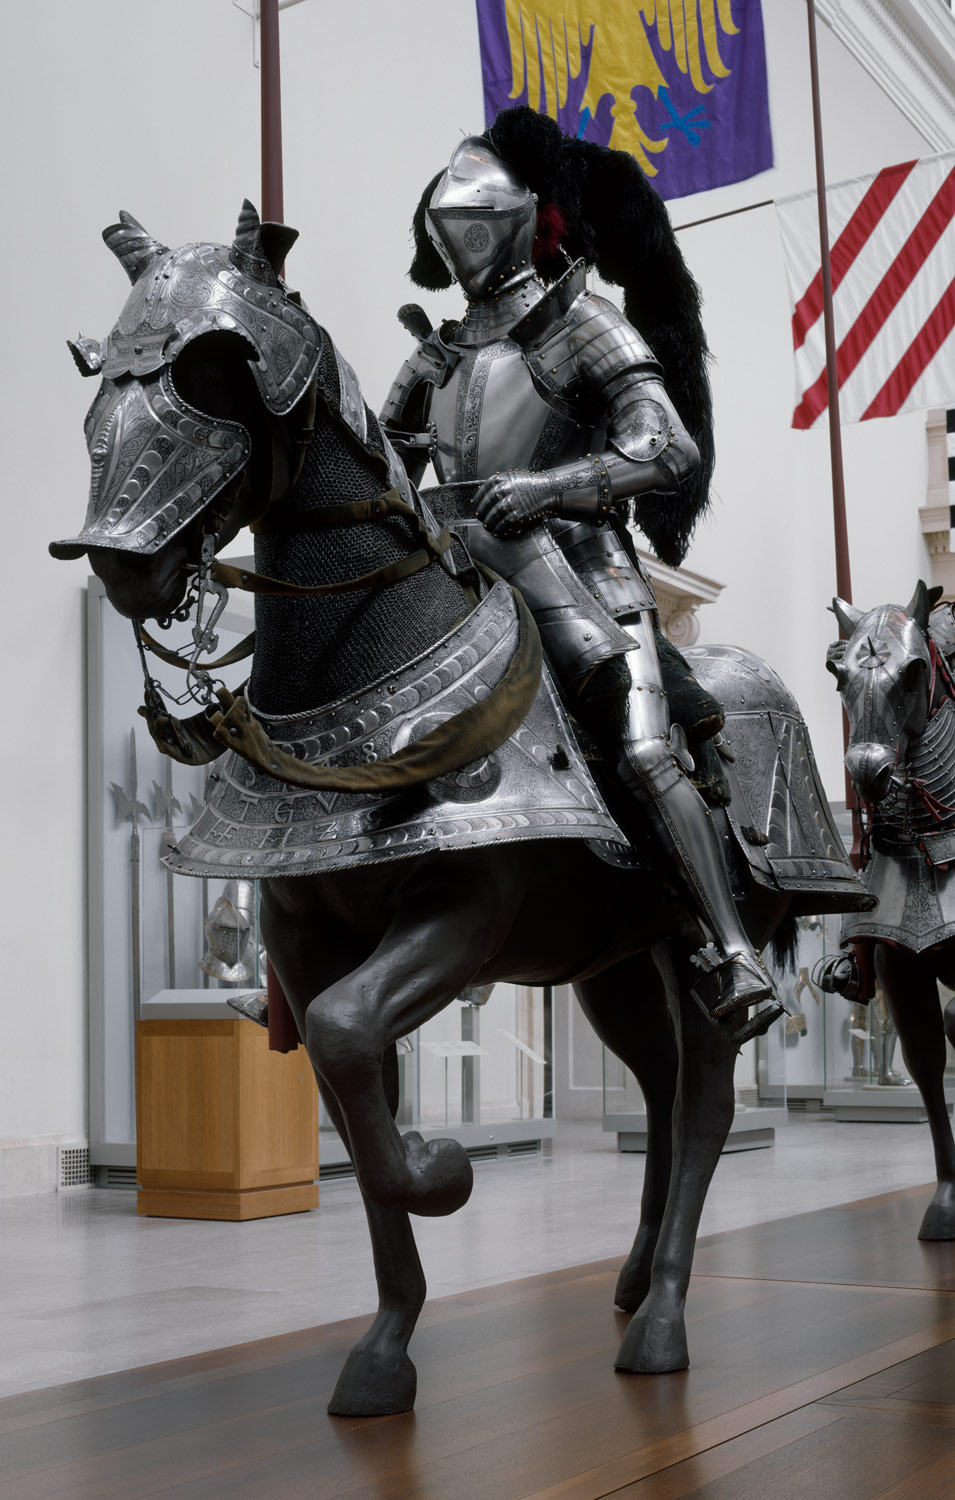 Horse Armor Made for Johann Ernst, Duke of Saxony-Coburg (1521–1553)